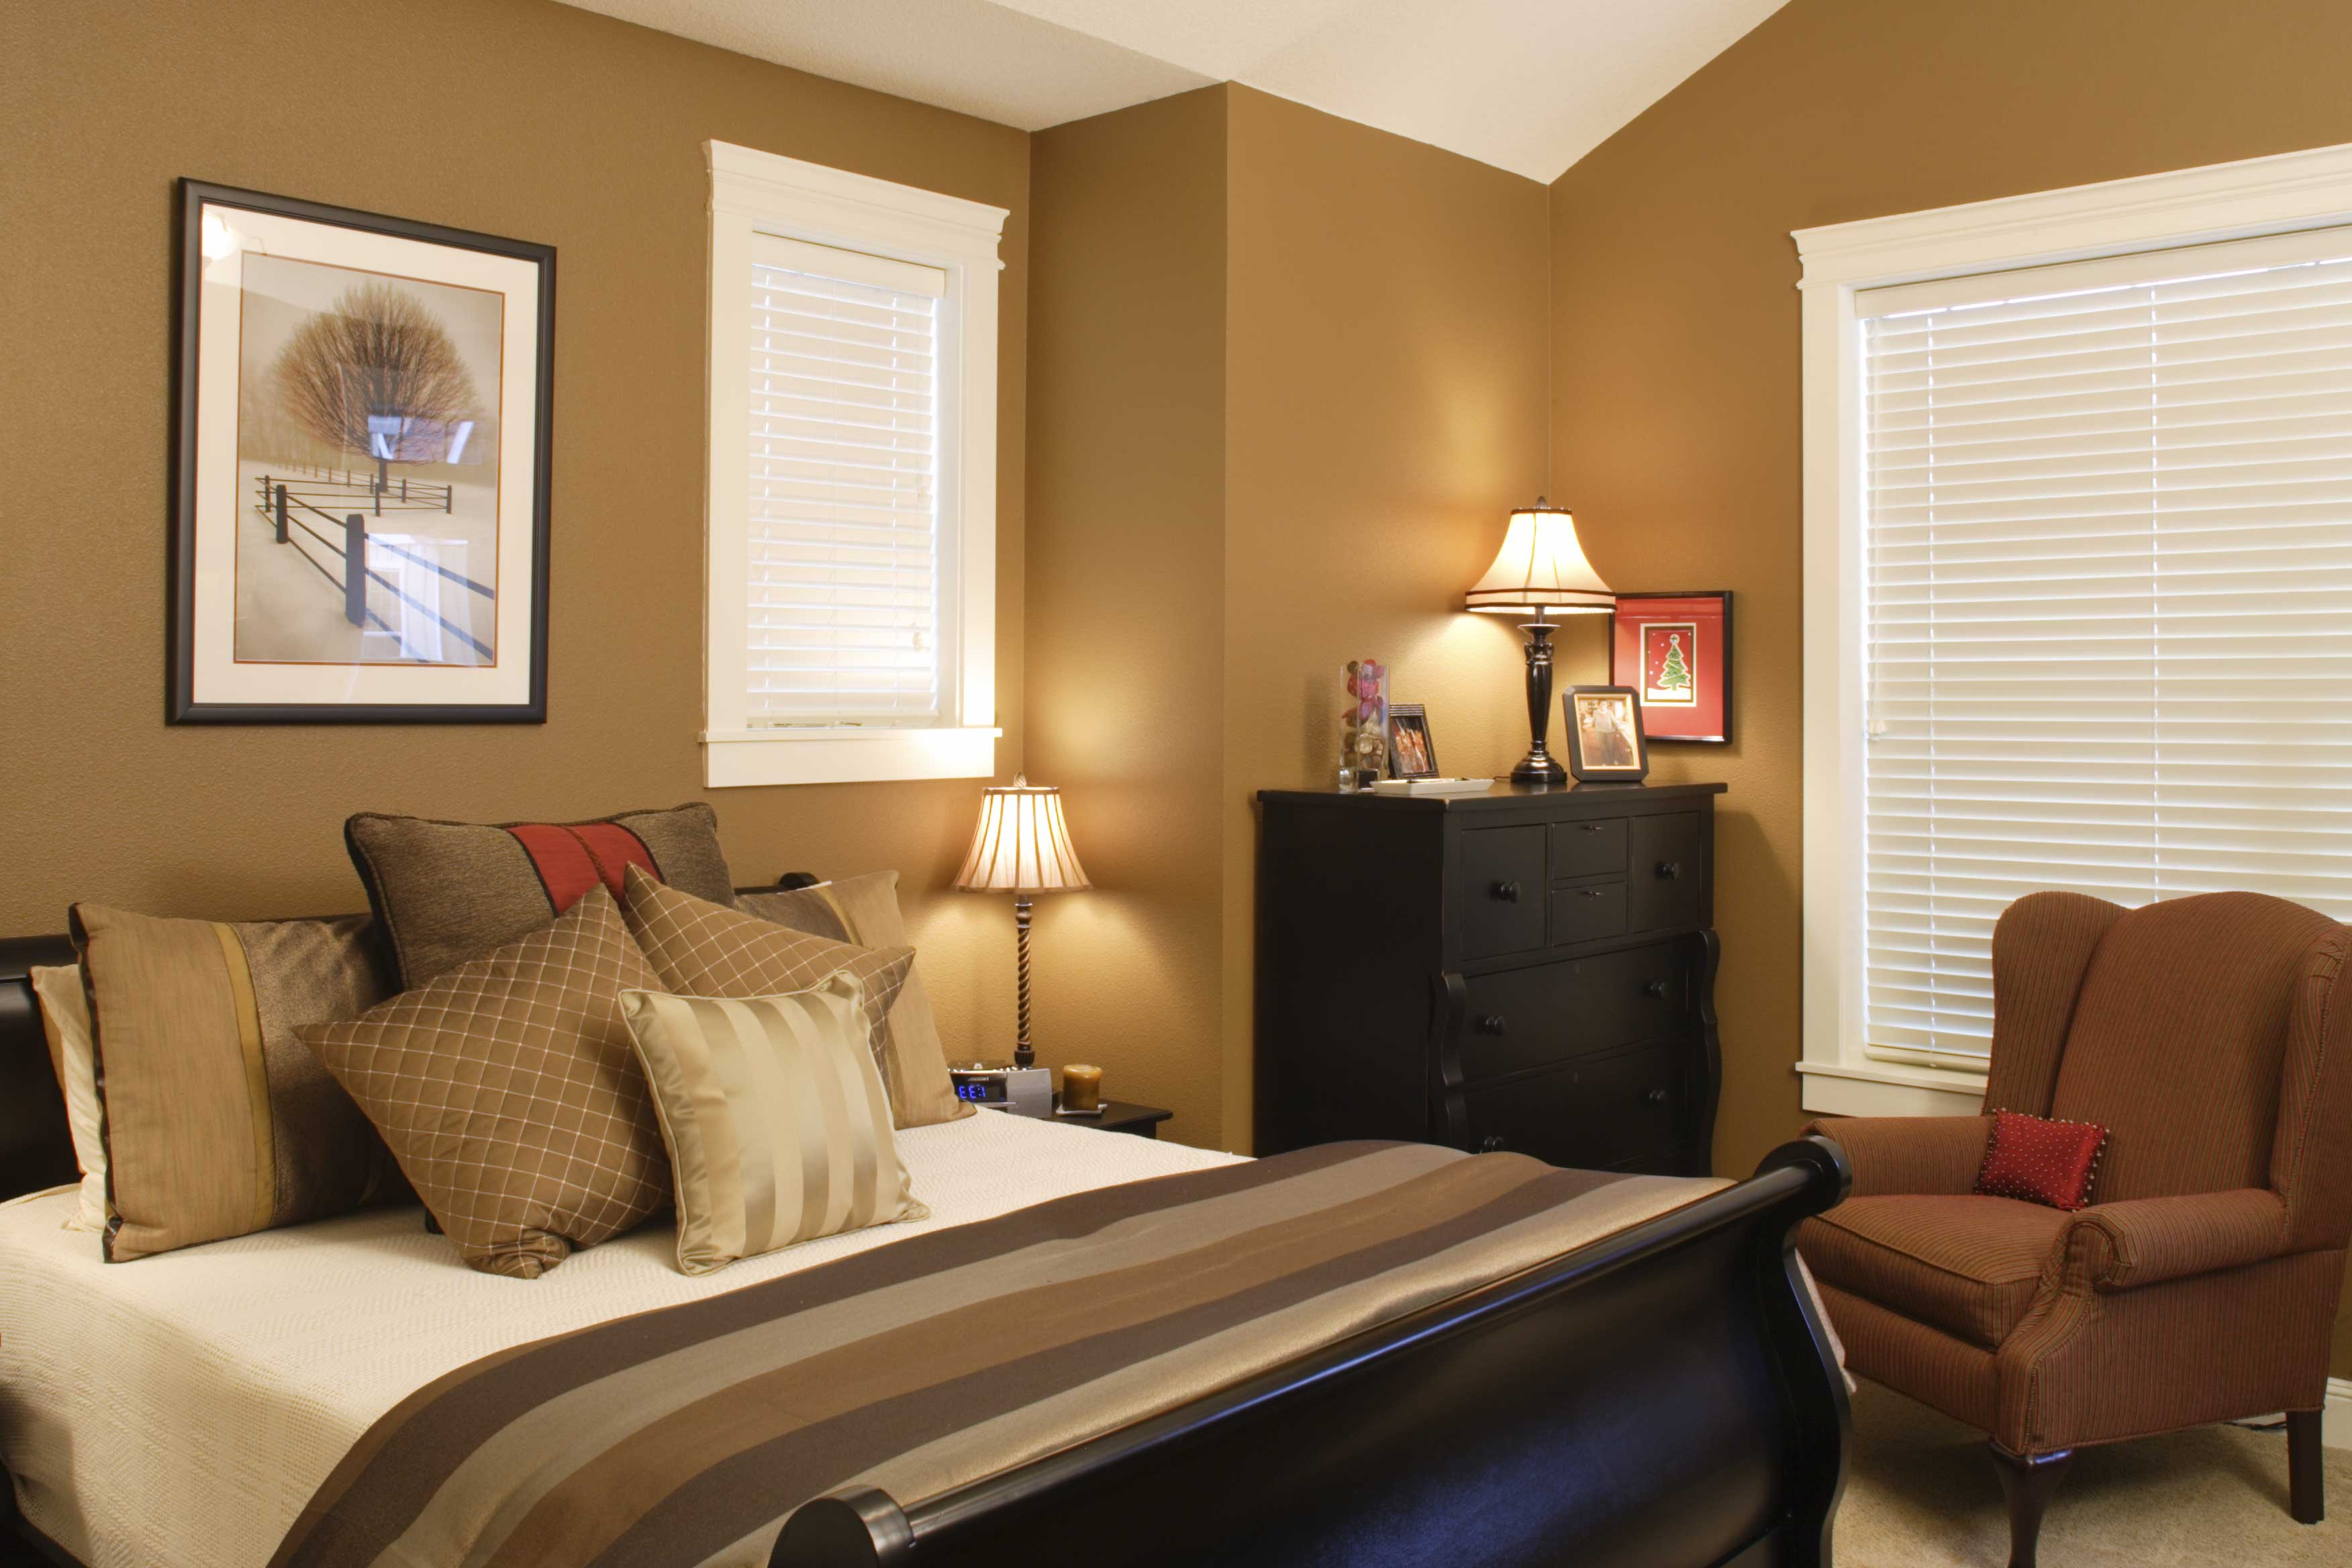 Captivating Brown Color For Warm Sense Of Interior Paint Color 2014 For Bedroom With  Dark Bed Cabinet